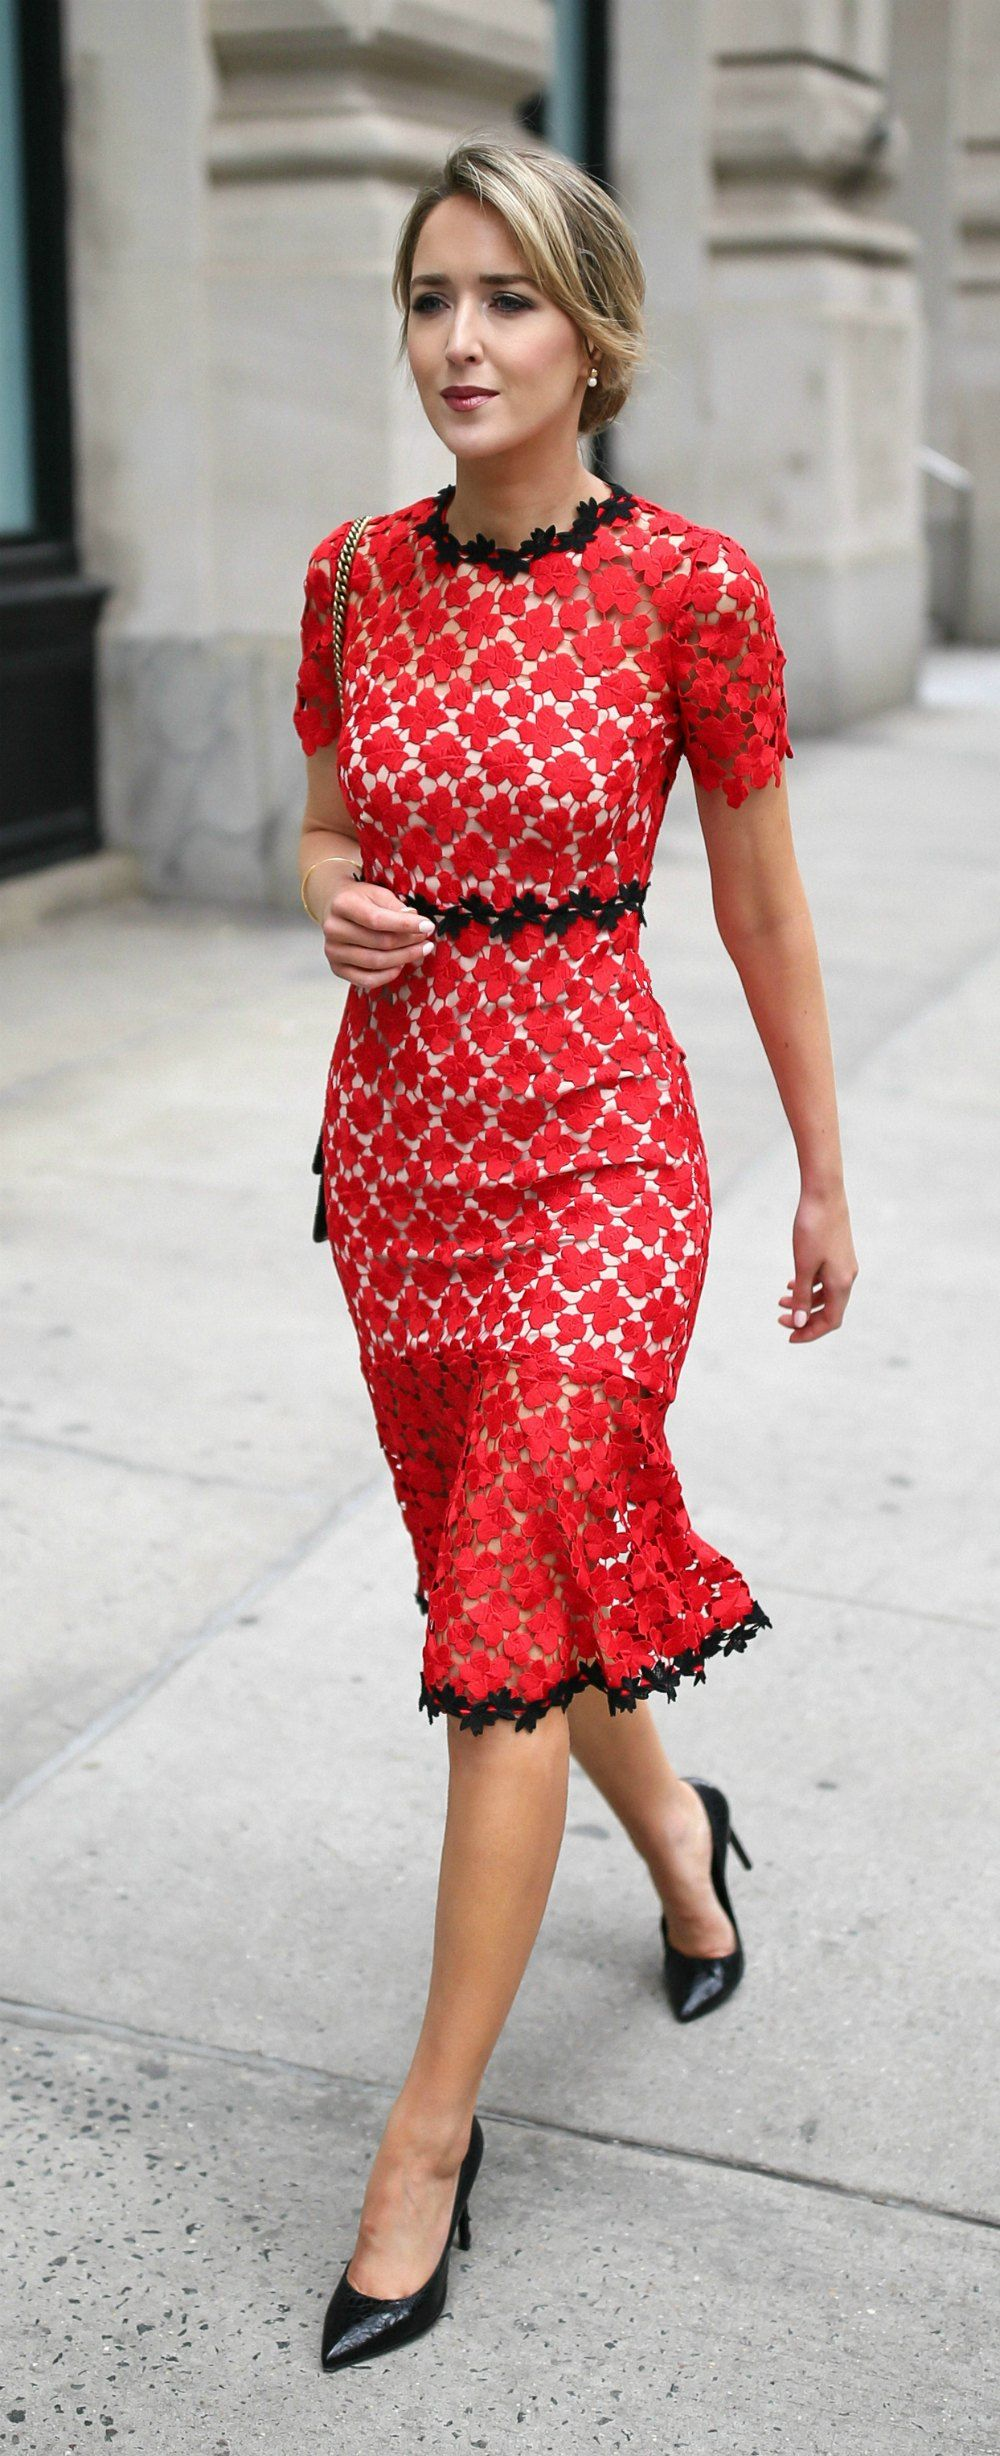 What to wear to a wedding cocktail attire wedding guest red